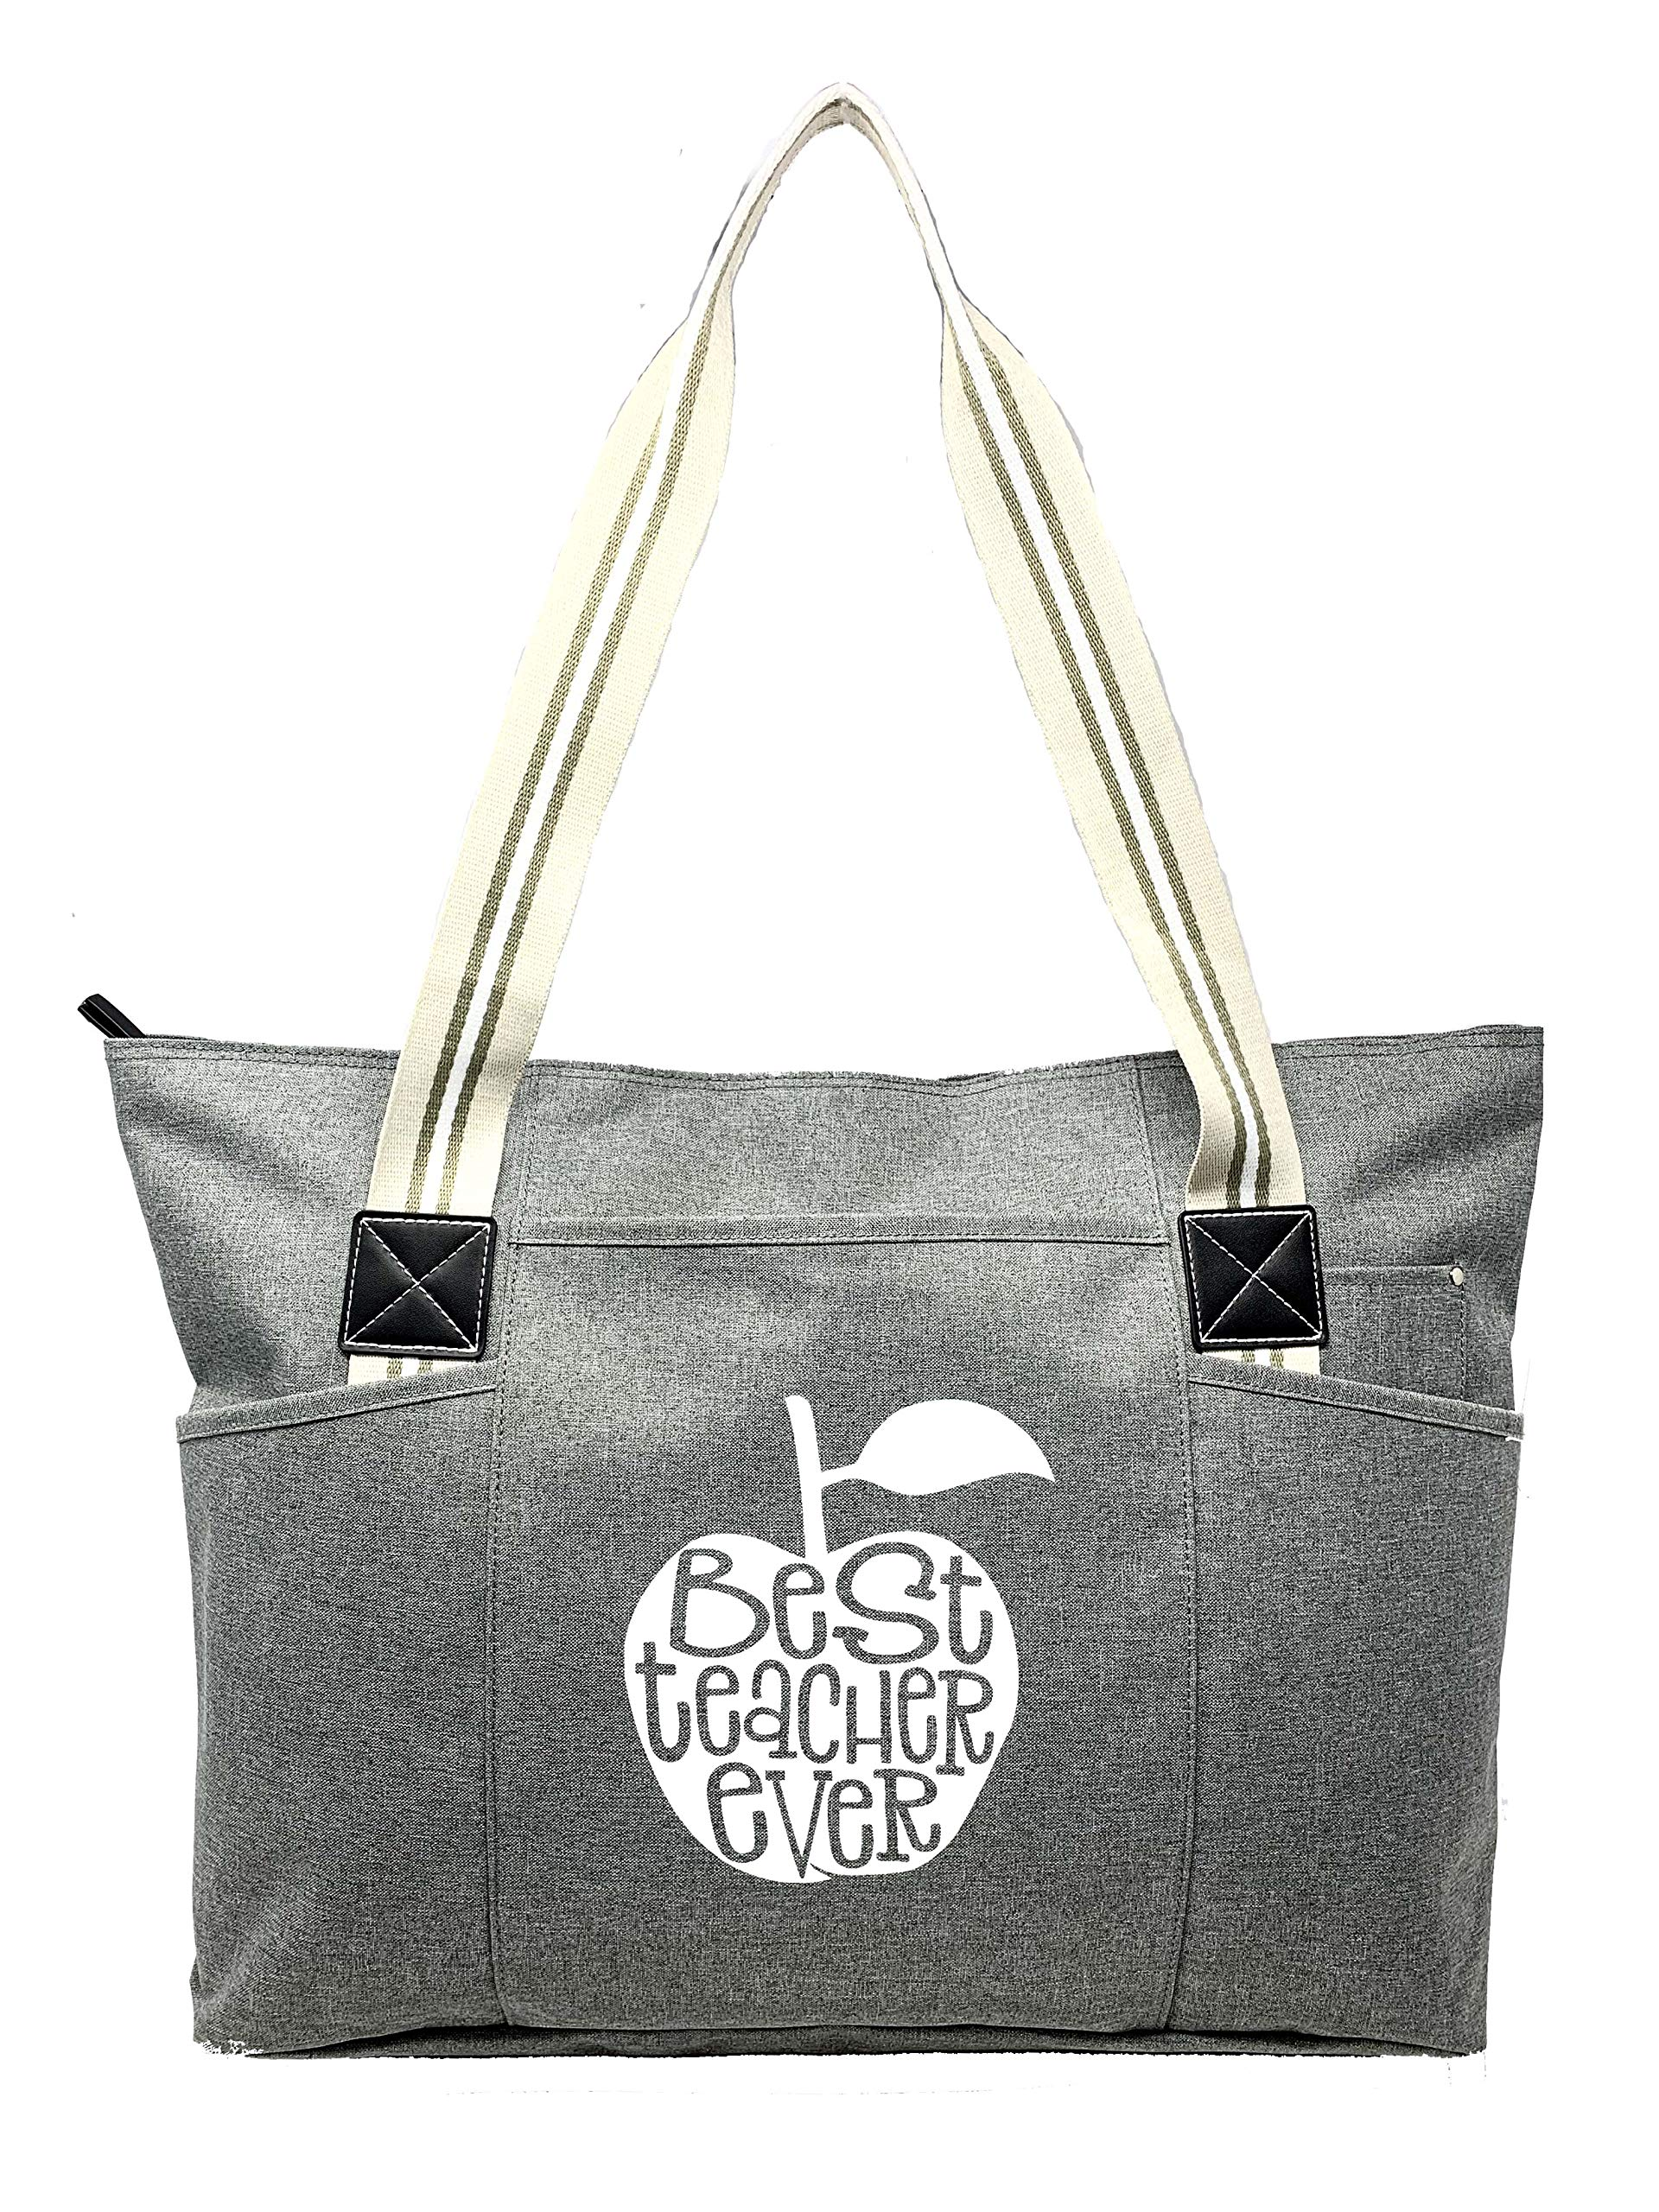 Large Teacher Tote Bags - Perfect for Work Gifts for Teachers Teacher Appreciation Day